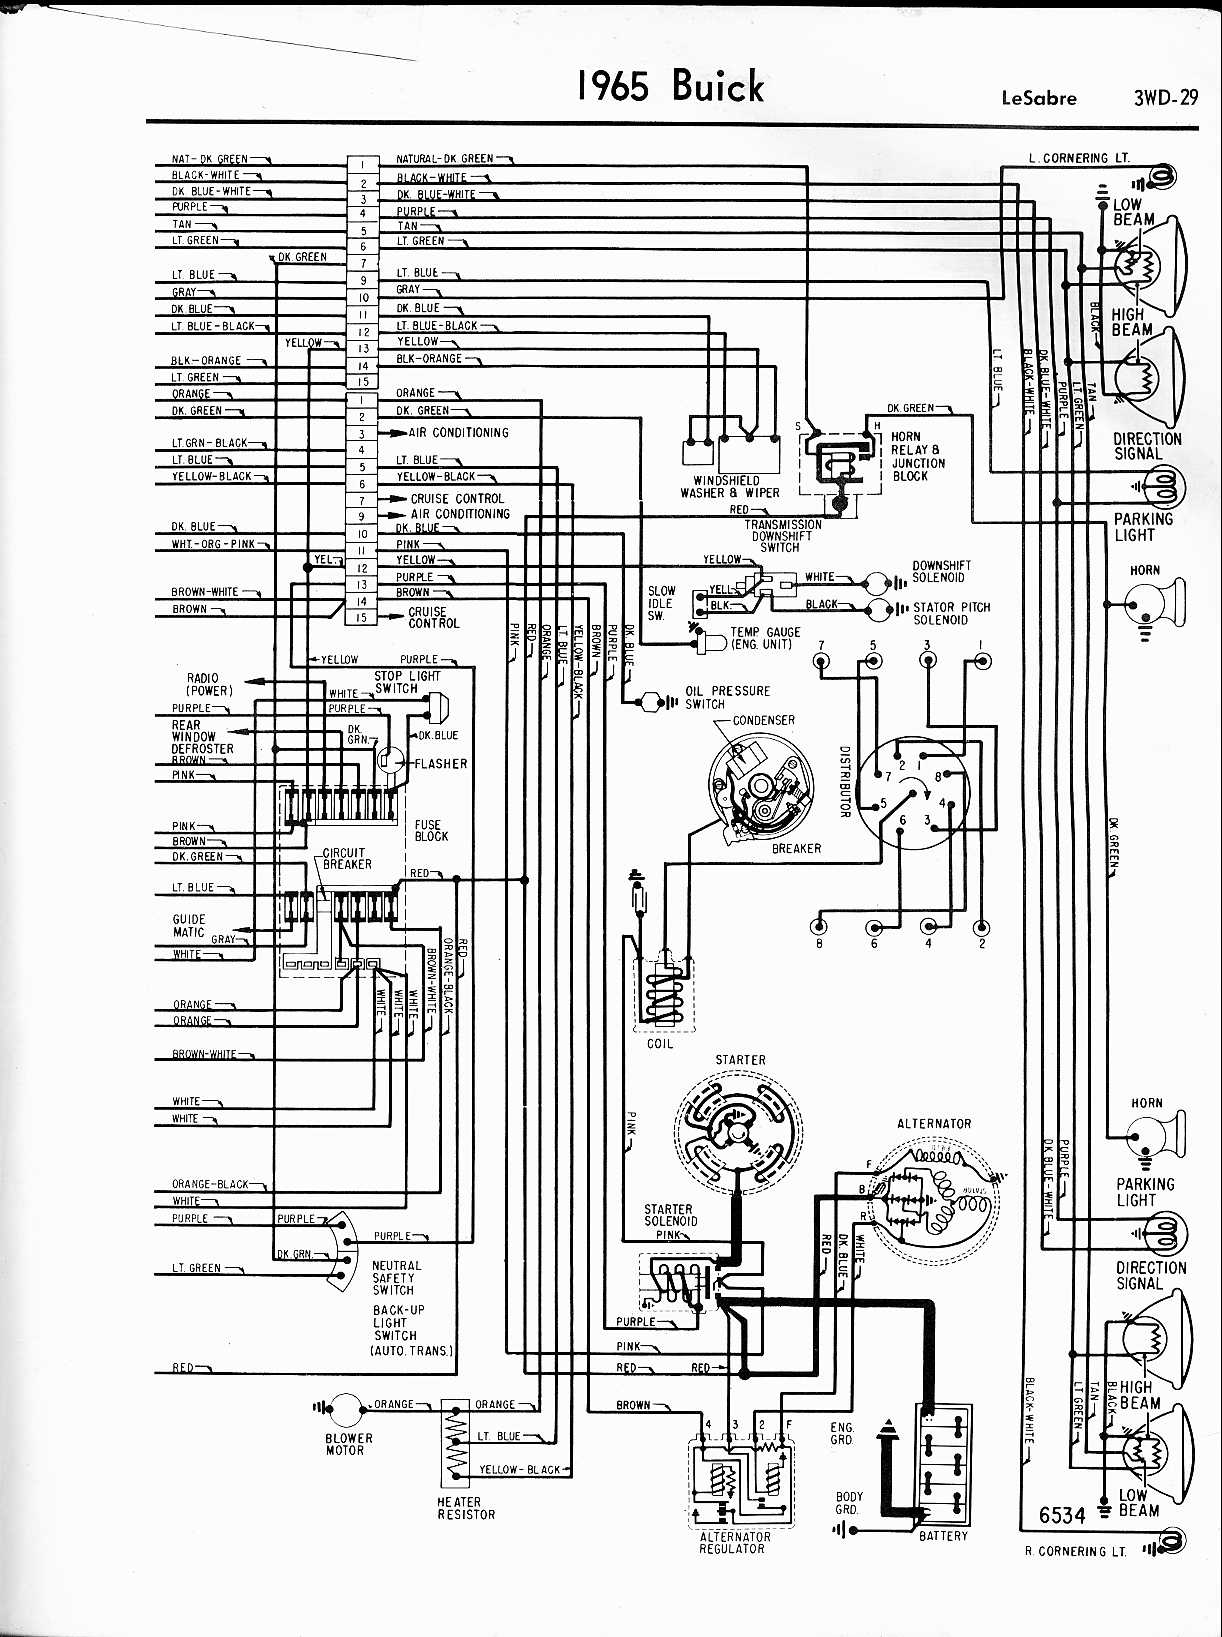 Dodge Dakota Wiring Schematic Free Picture Diagram | Wiring Liry on dodge ram door switch diagram, dodge wiring harness diagram, 2002 dodge ram electrical diagram,